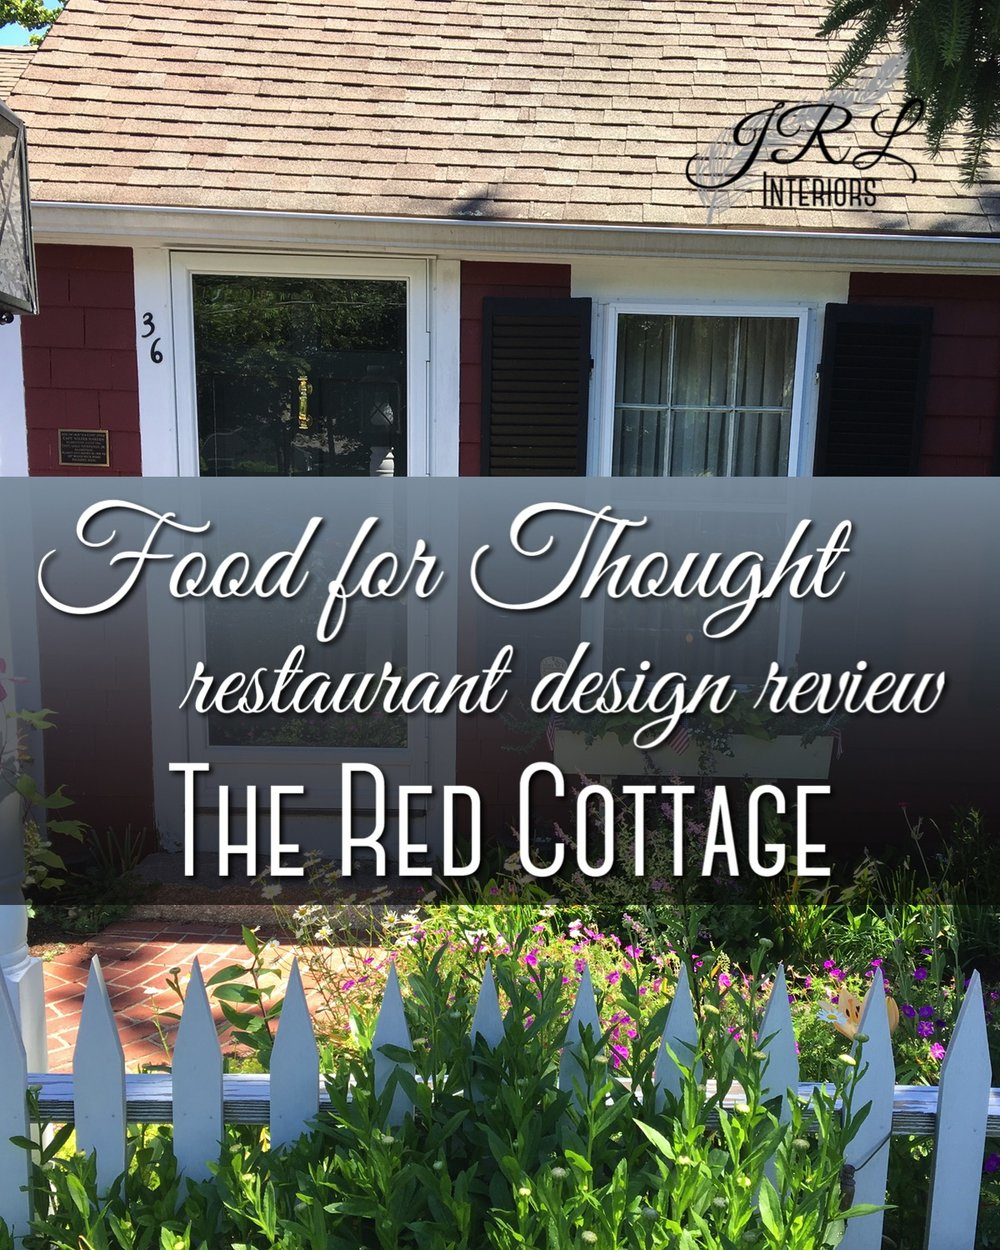 Food for Thought The Red Cottage.jpg